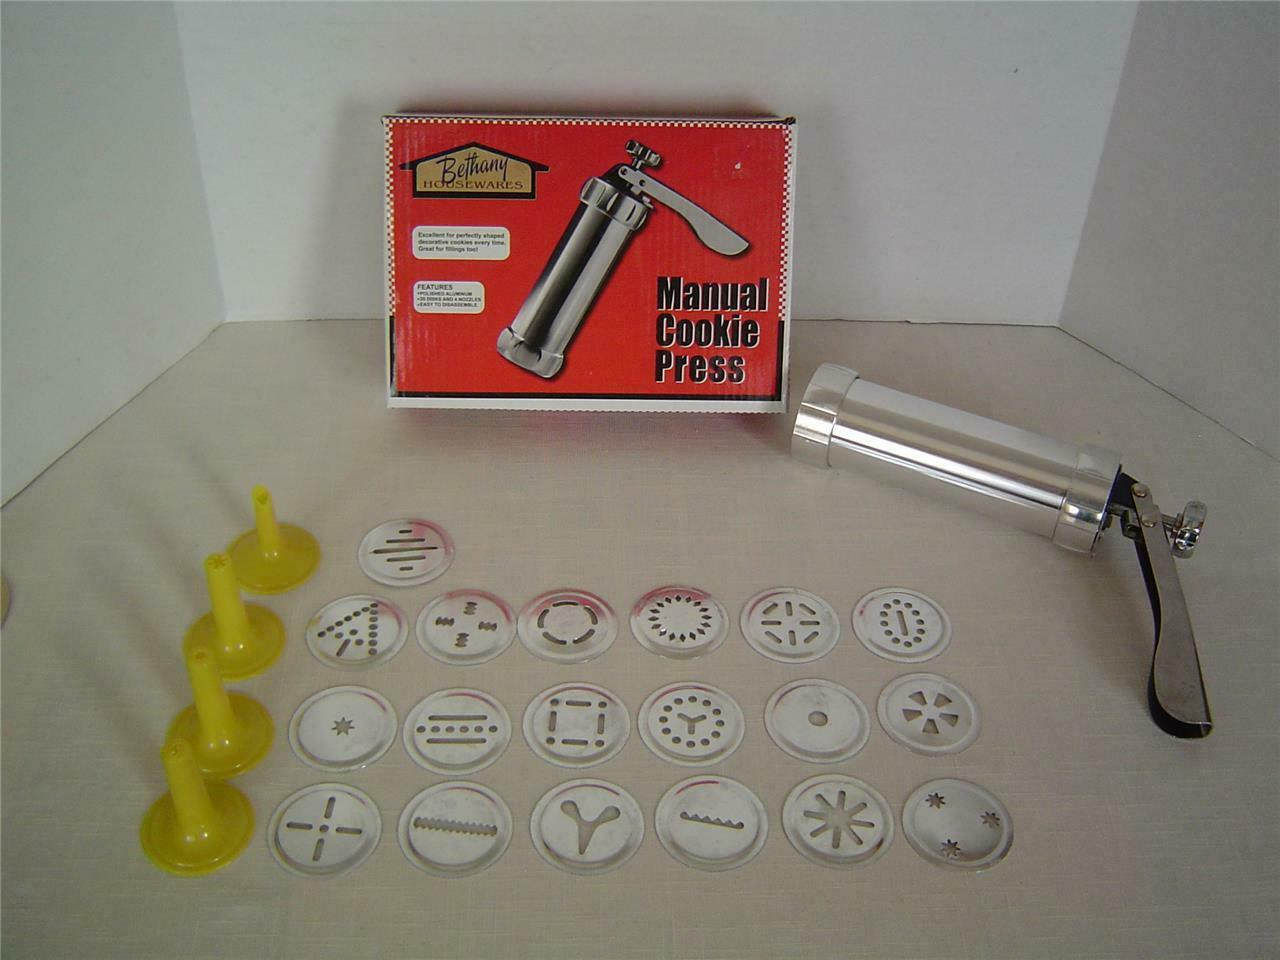 QYIYA 20 Pcs Cookie Press Set with Cake Cream Decorating Syringe Baking Pastry Nozzle